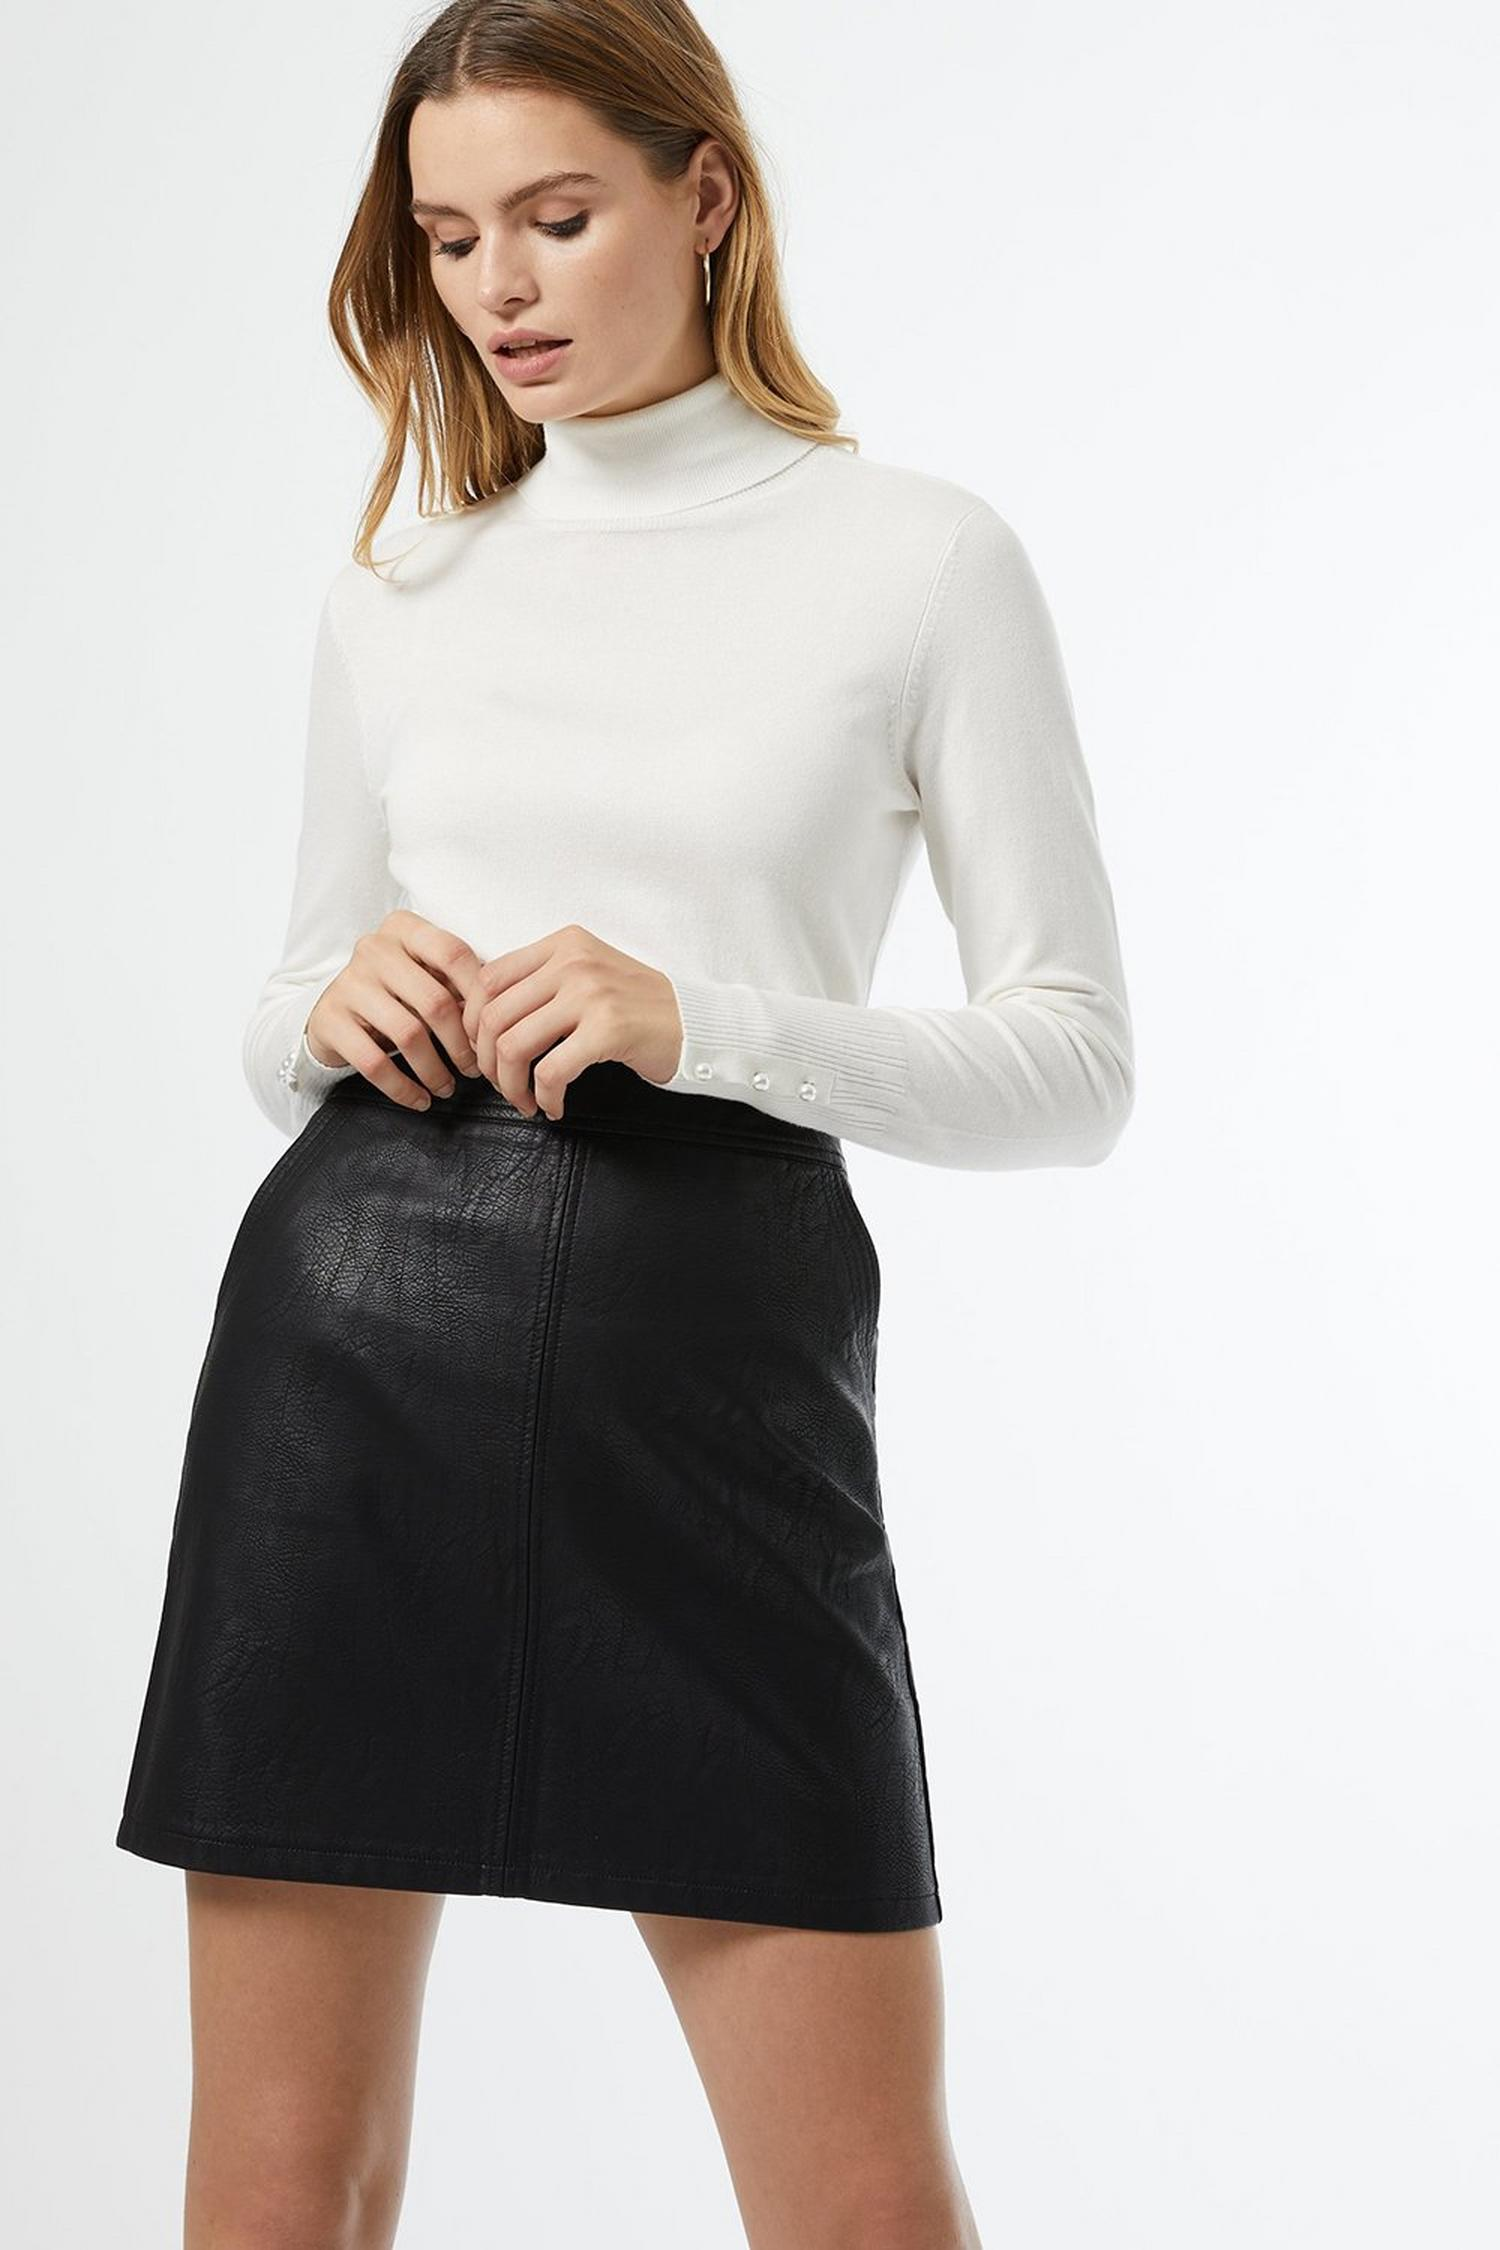 105 Black Faux Leather Pocket Mini Skirt image number 4